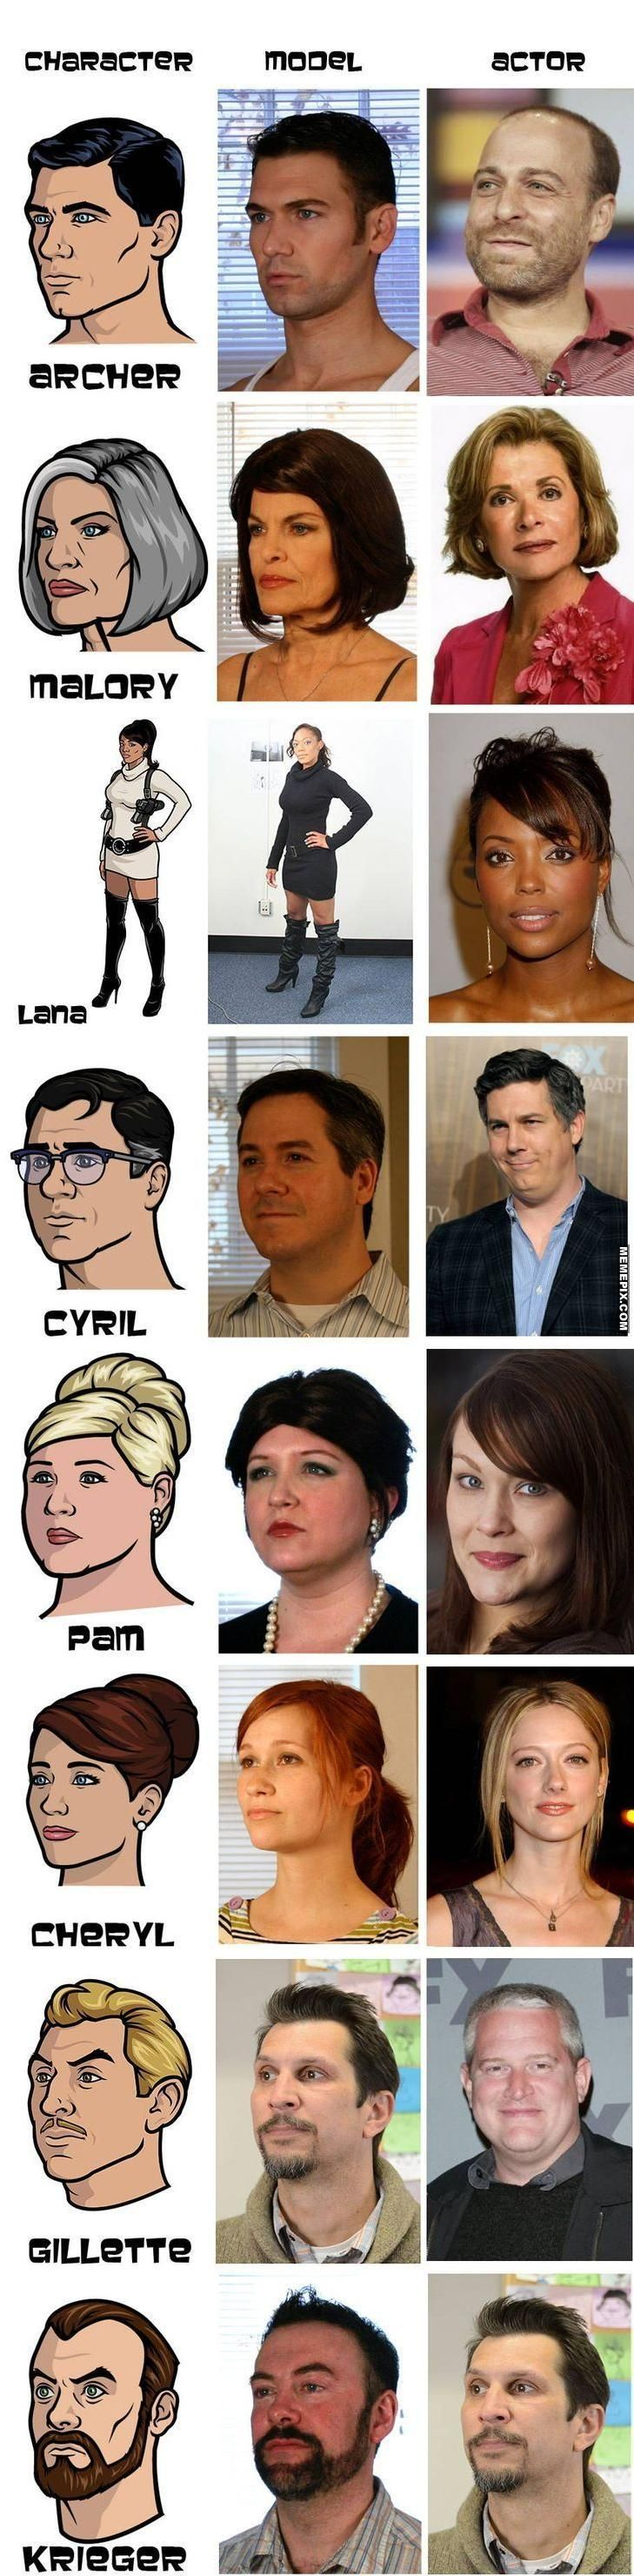 Here's a fun picture comparing Archer characters with their real-life counterpart and the actors that voice them. Check it out! [Source: fantasygoodtimes on Imgur | Via GG]